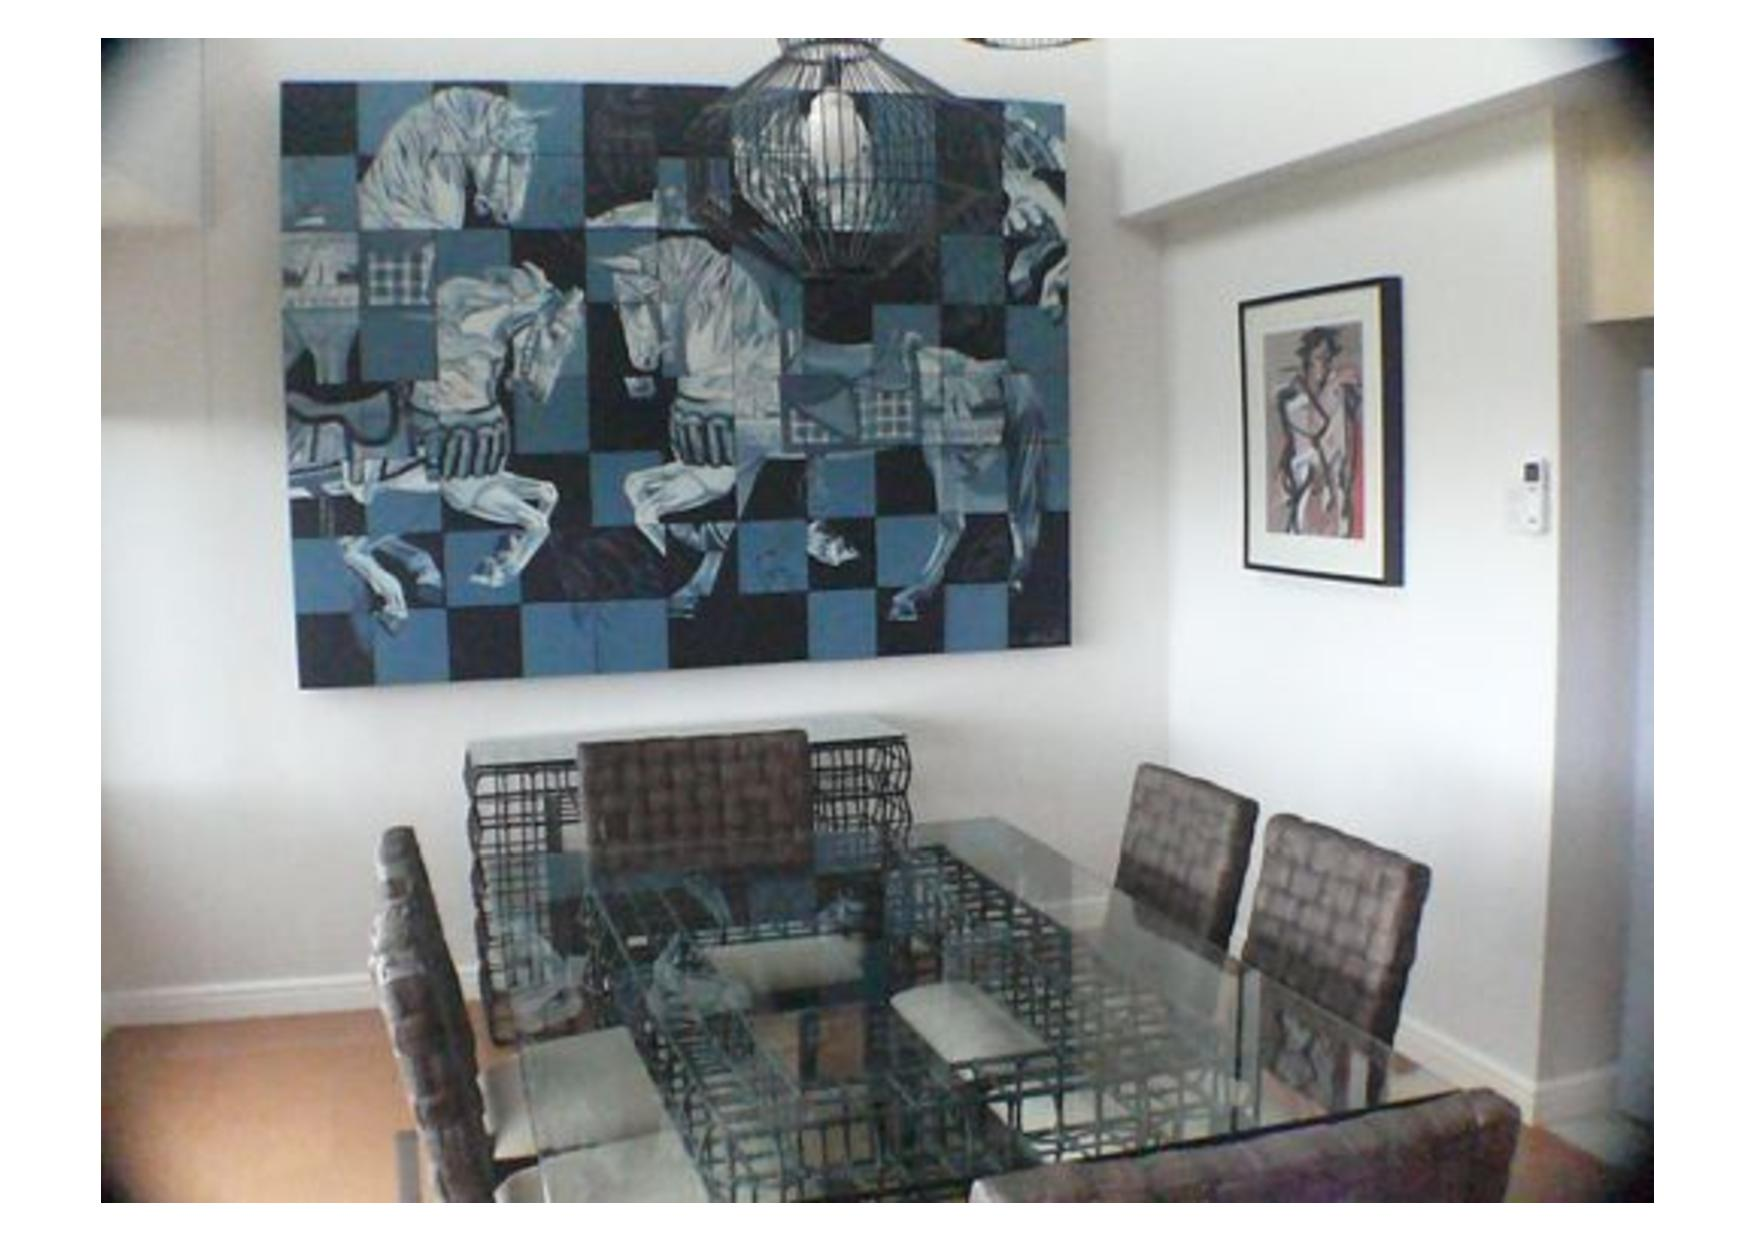 3BR Condo For Lease, One Rockwell West 4